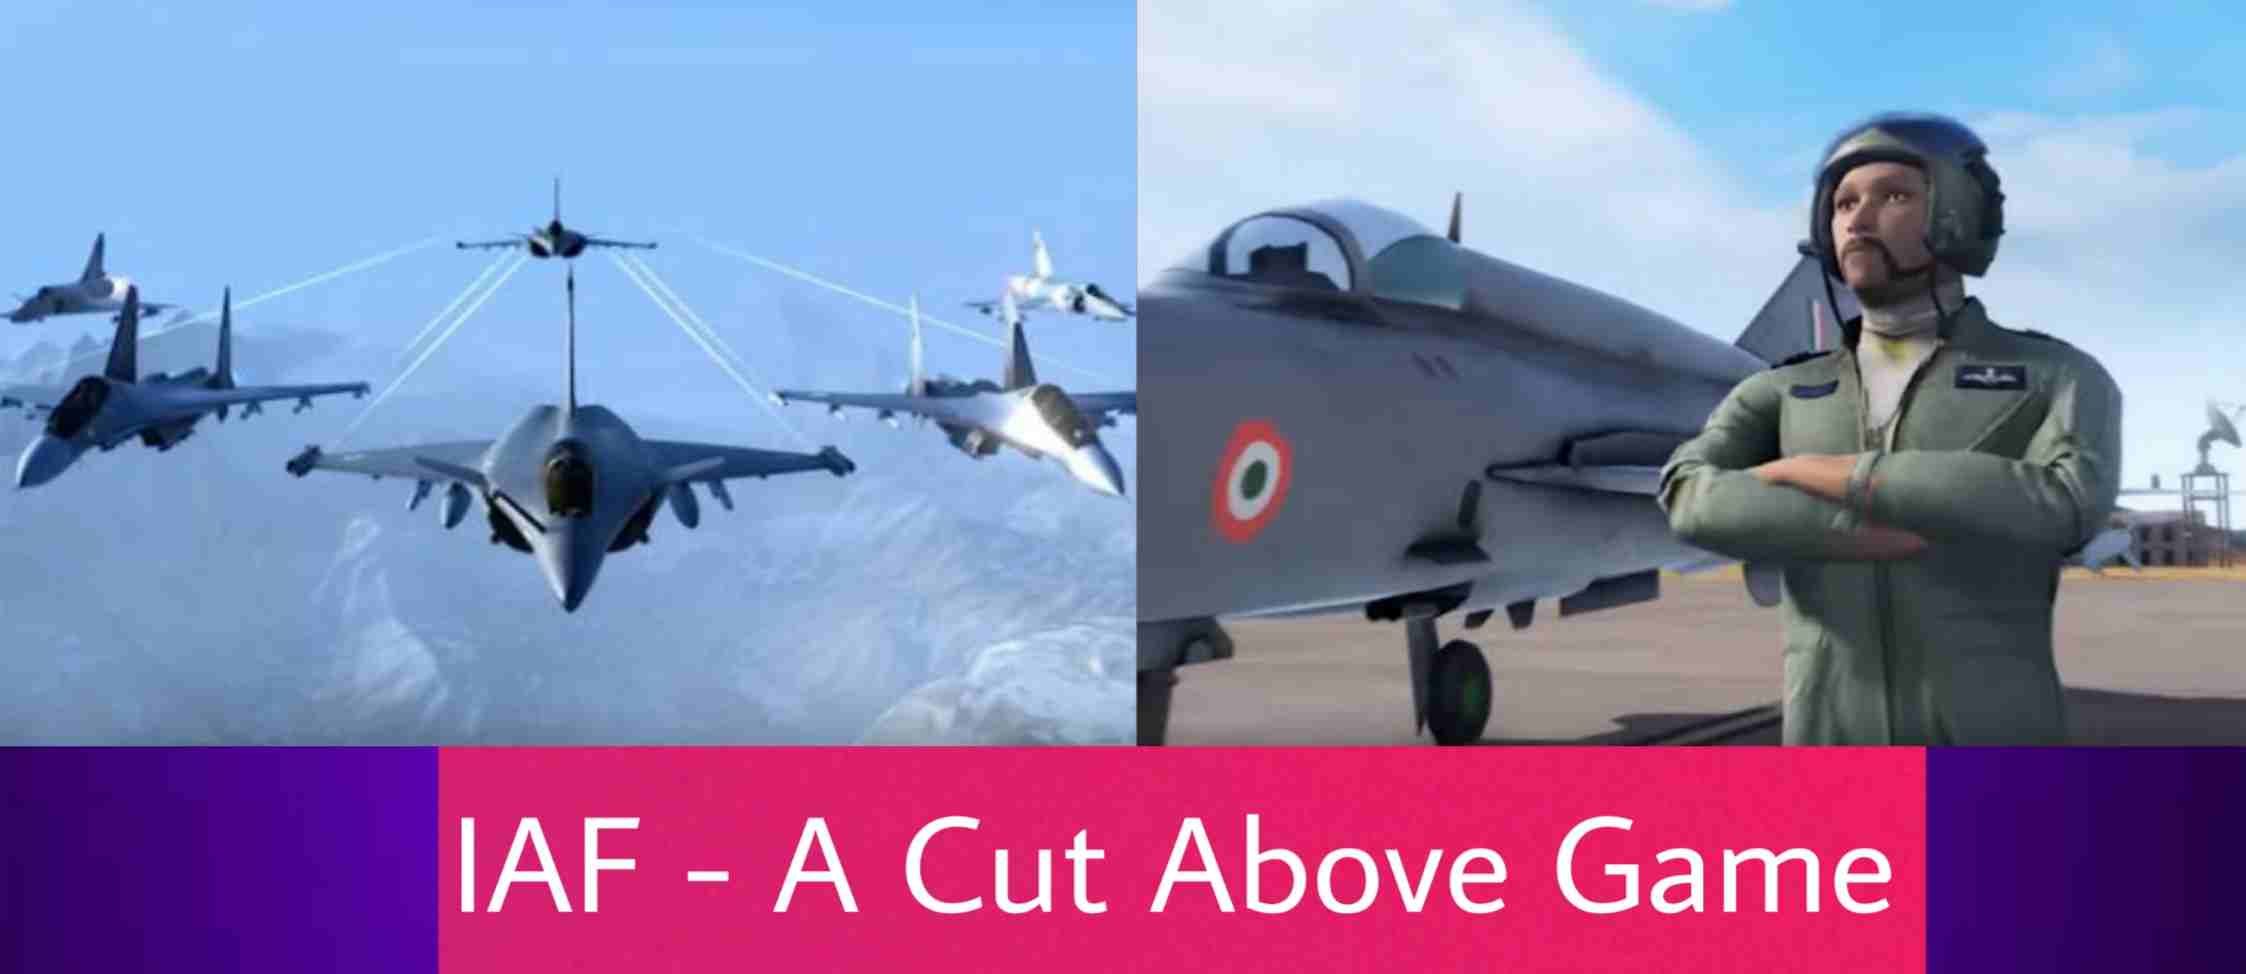 IAF (Indian Air Force) - Cut Above Game Features